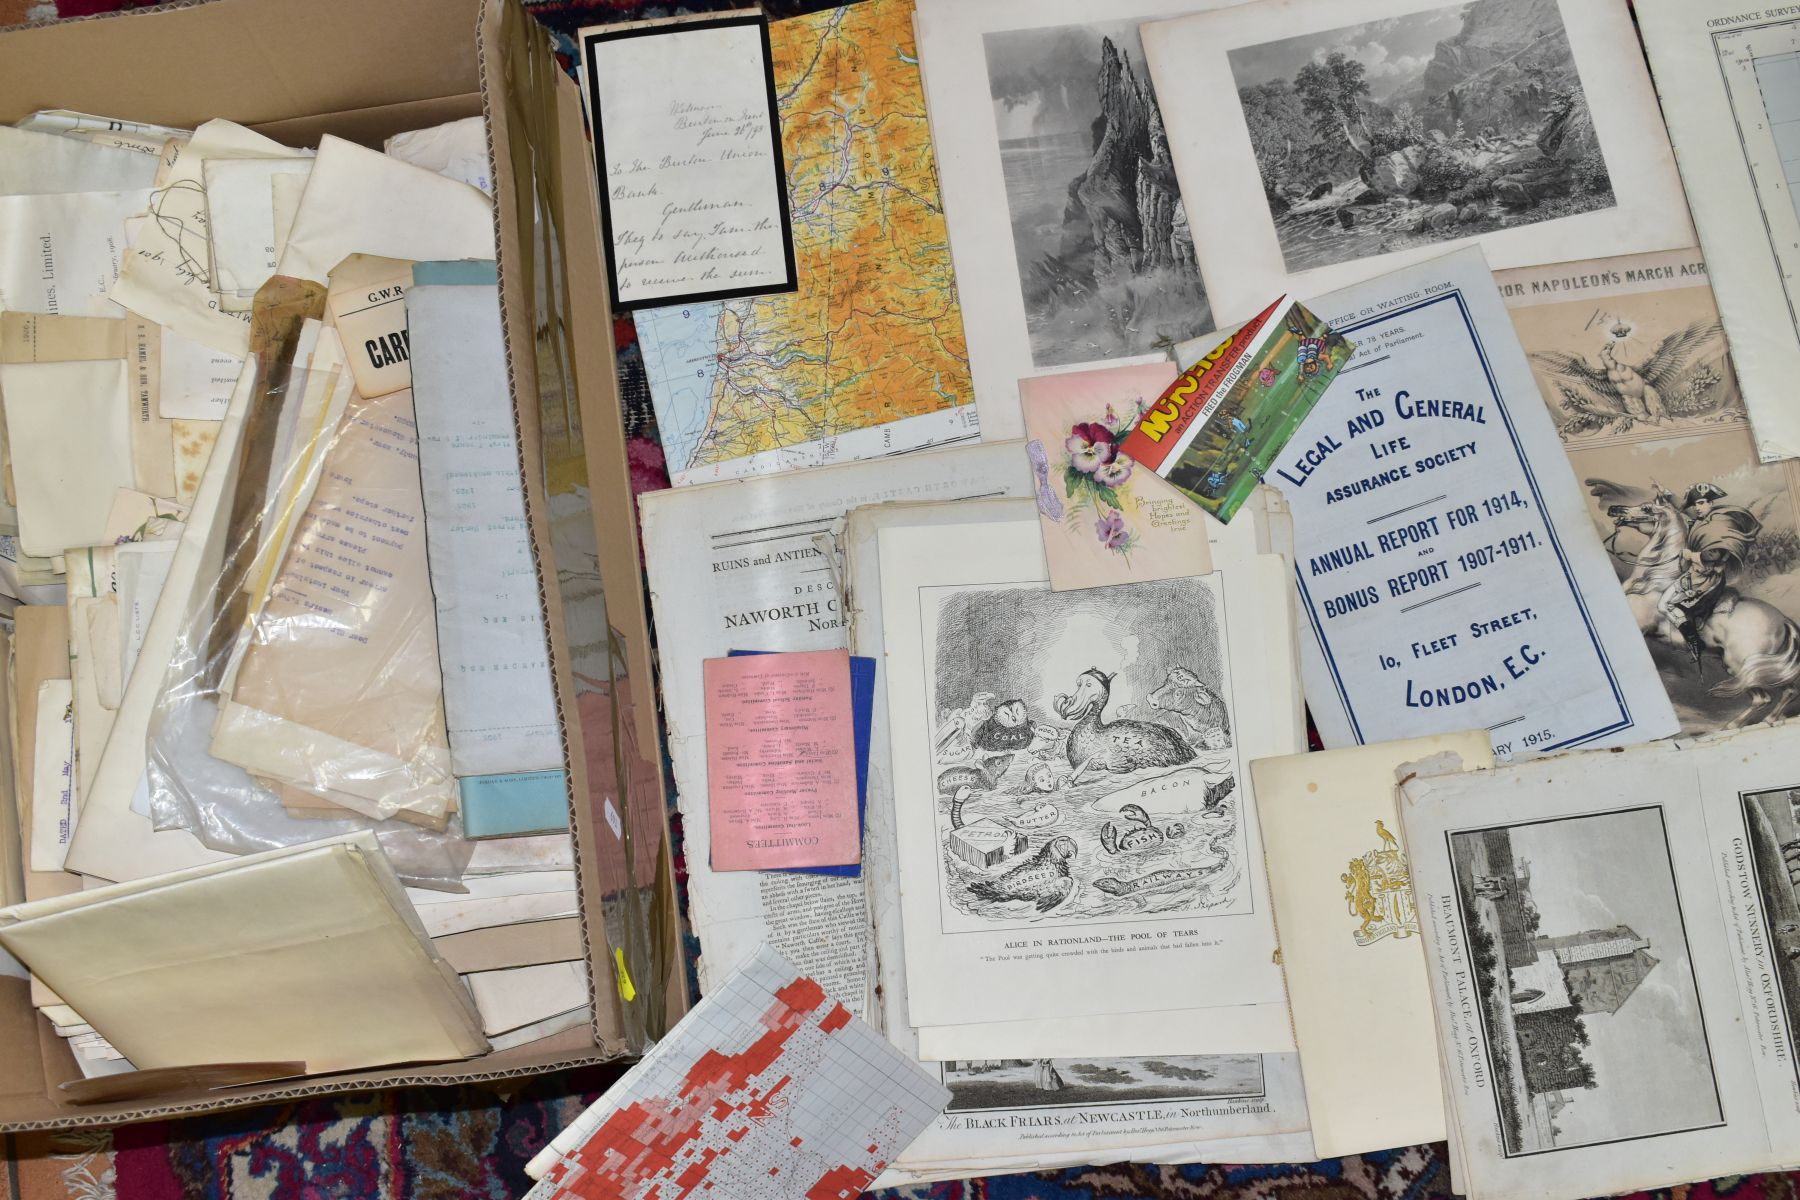 EPHEMERA, THREE BOXES OF PAPER EPHEMERA, to include newspapers/cuttings, maps, indentures, - Image 4 of 4